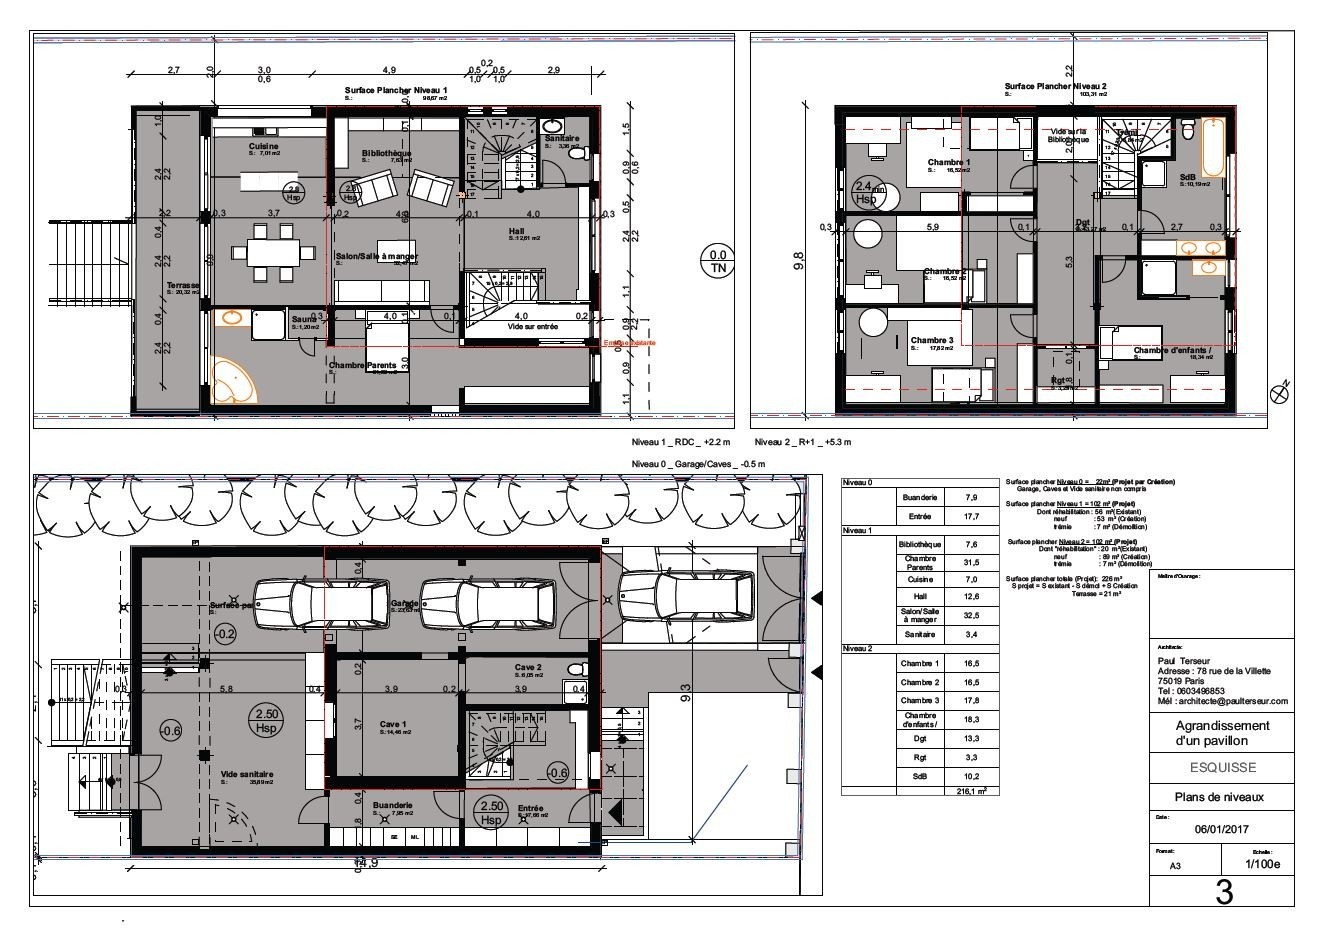 Plan Agrandissement Maison Individuelle Davidreed Co